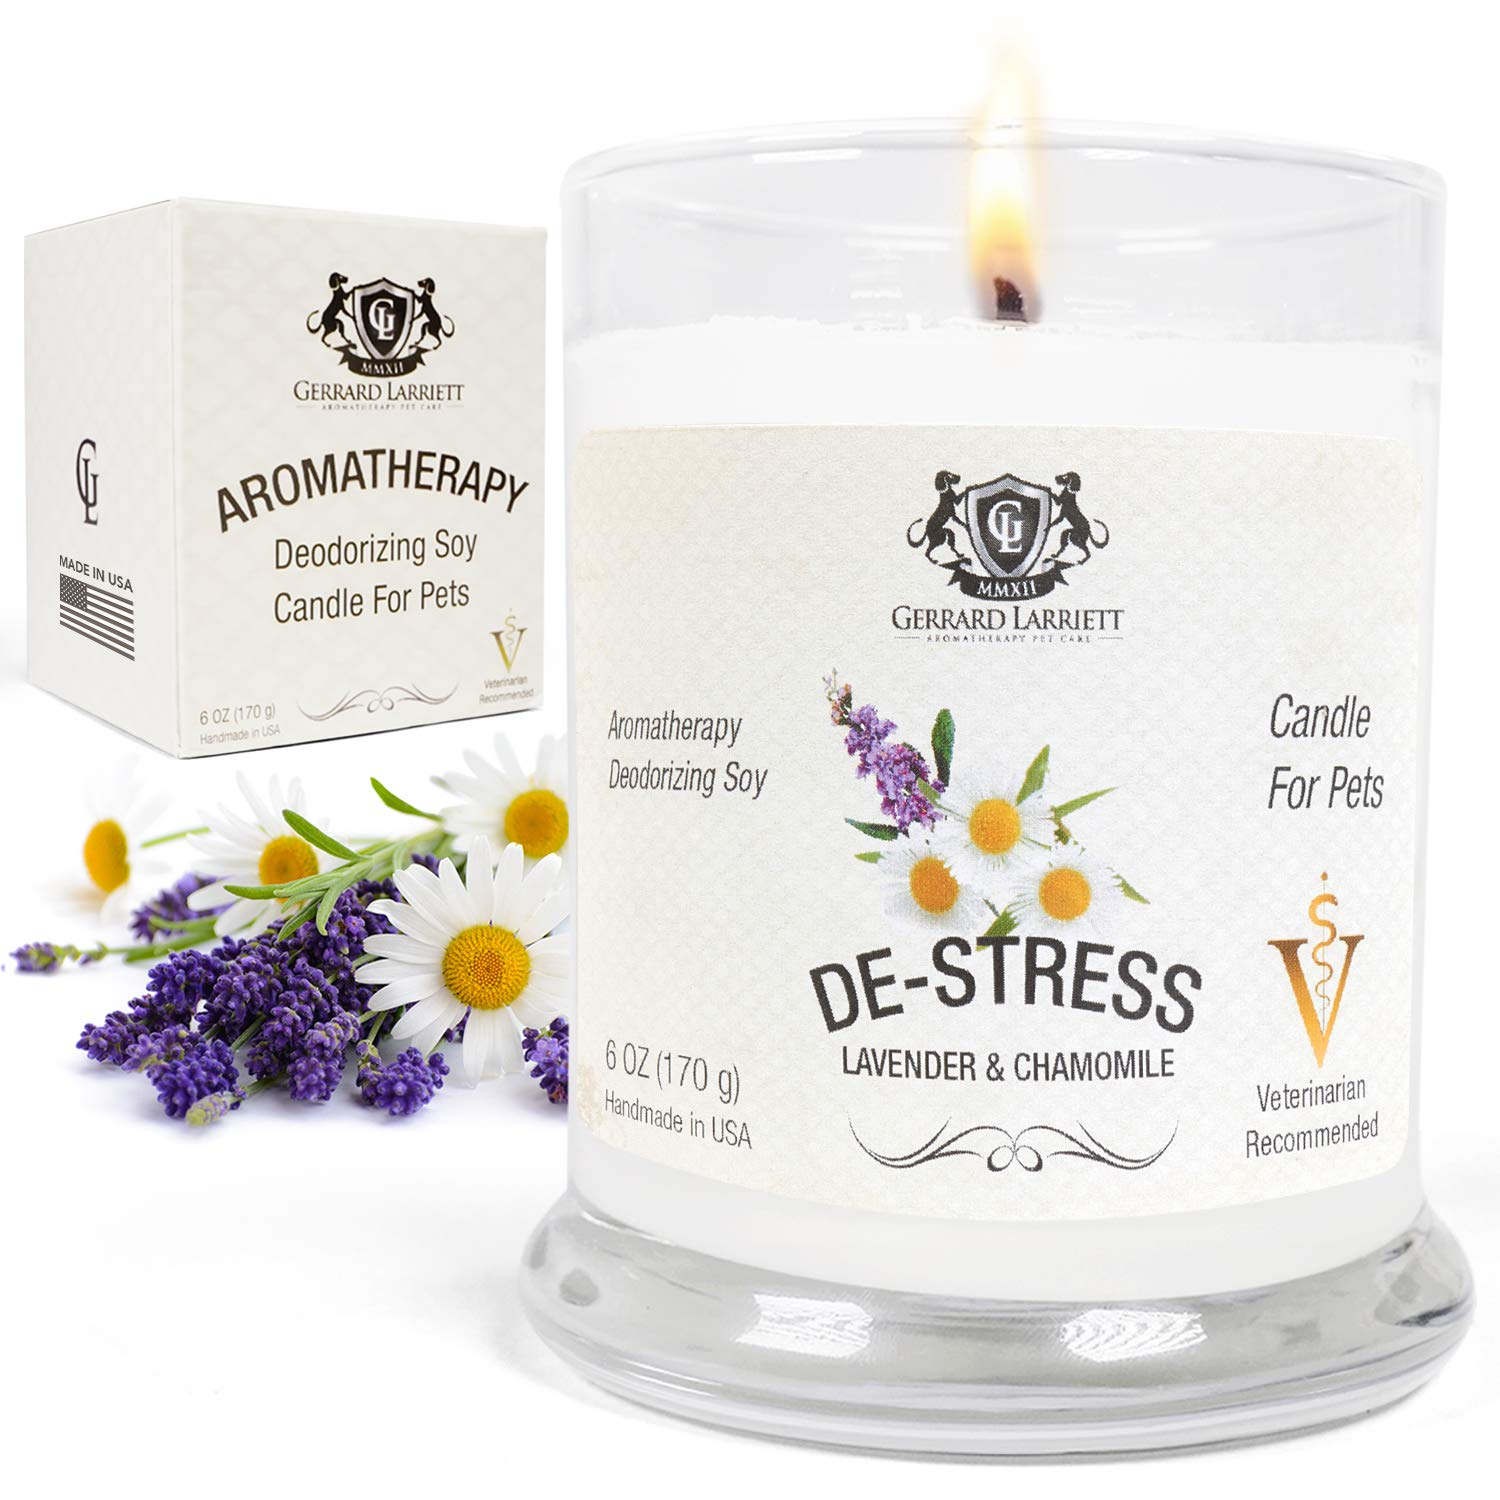 Lavender & Chamomile Aromatherapy Deodorizing Soy Candle for Pets, Pet Odor Eliminator & Animal Lover Gift - 6 OZ (170 g) by Gerrard Larriett Aromatherapy Pet Care